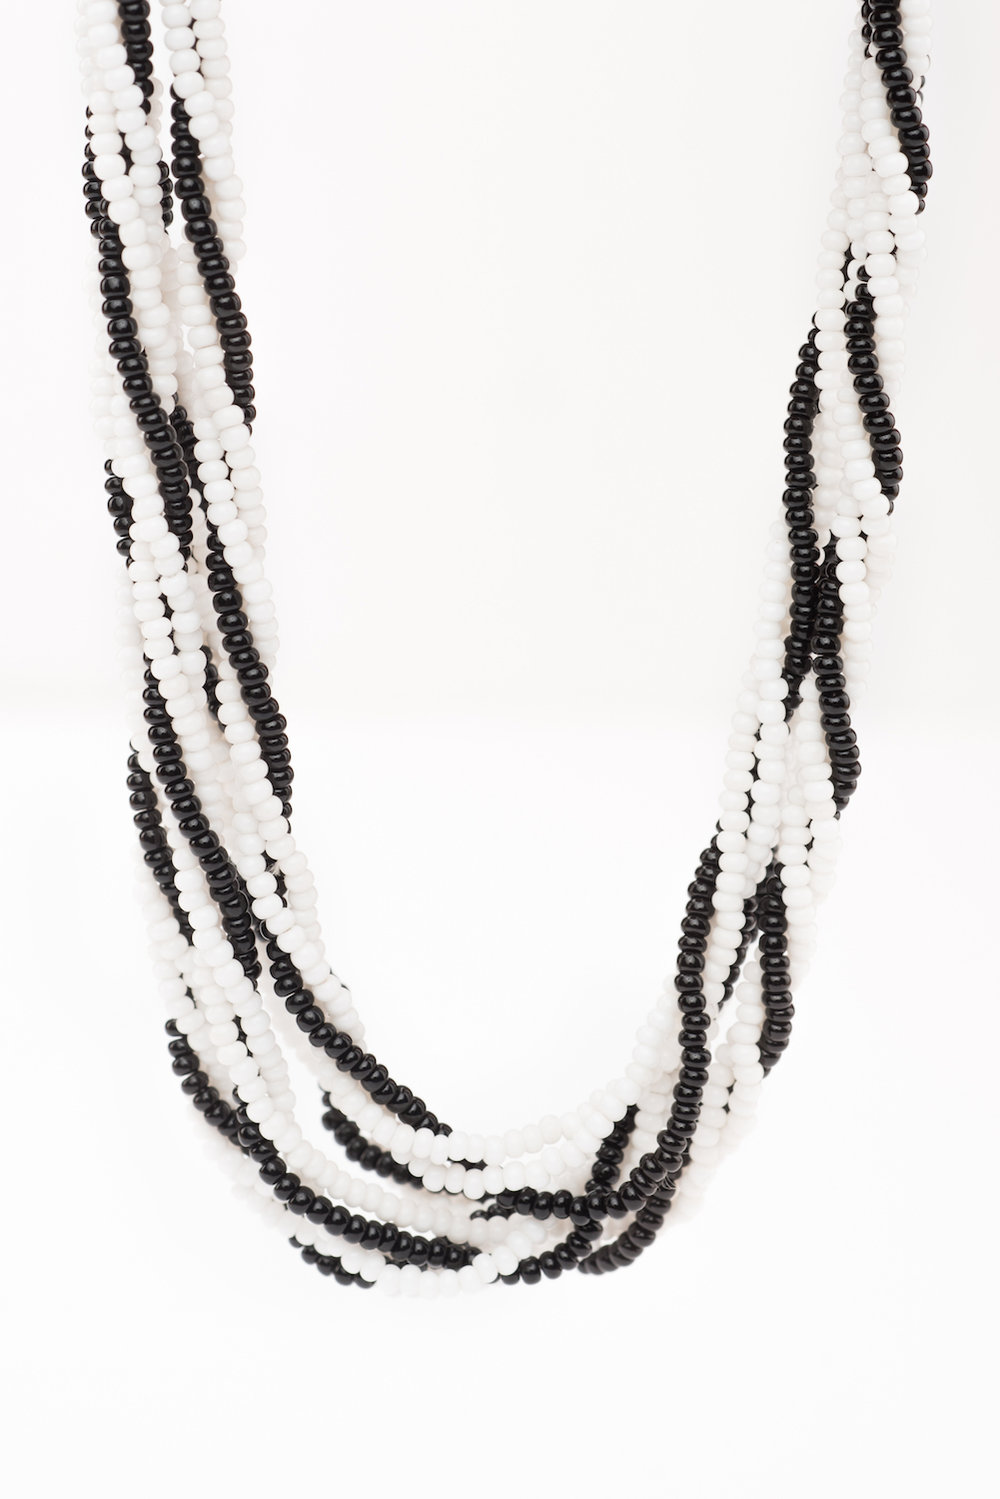 Twisted Necklace (Trad Zebra)-BW2004 (2).jpg